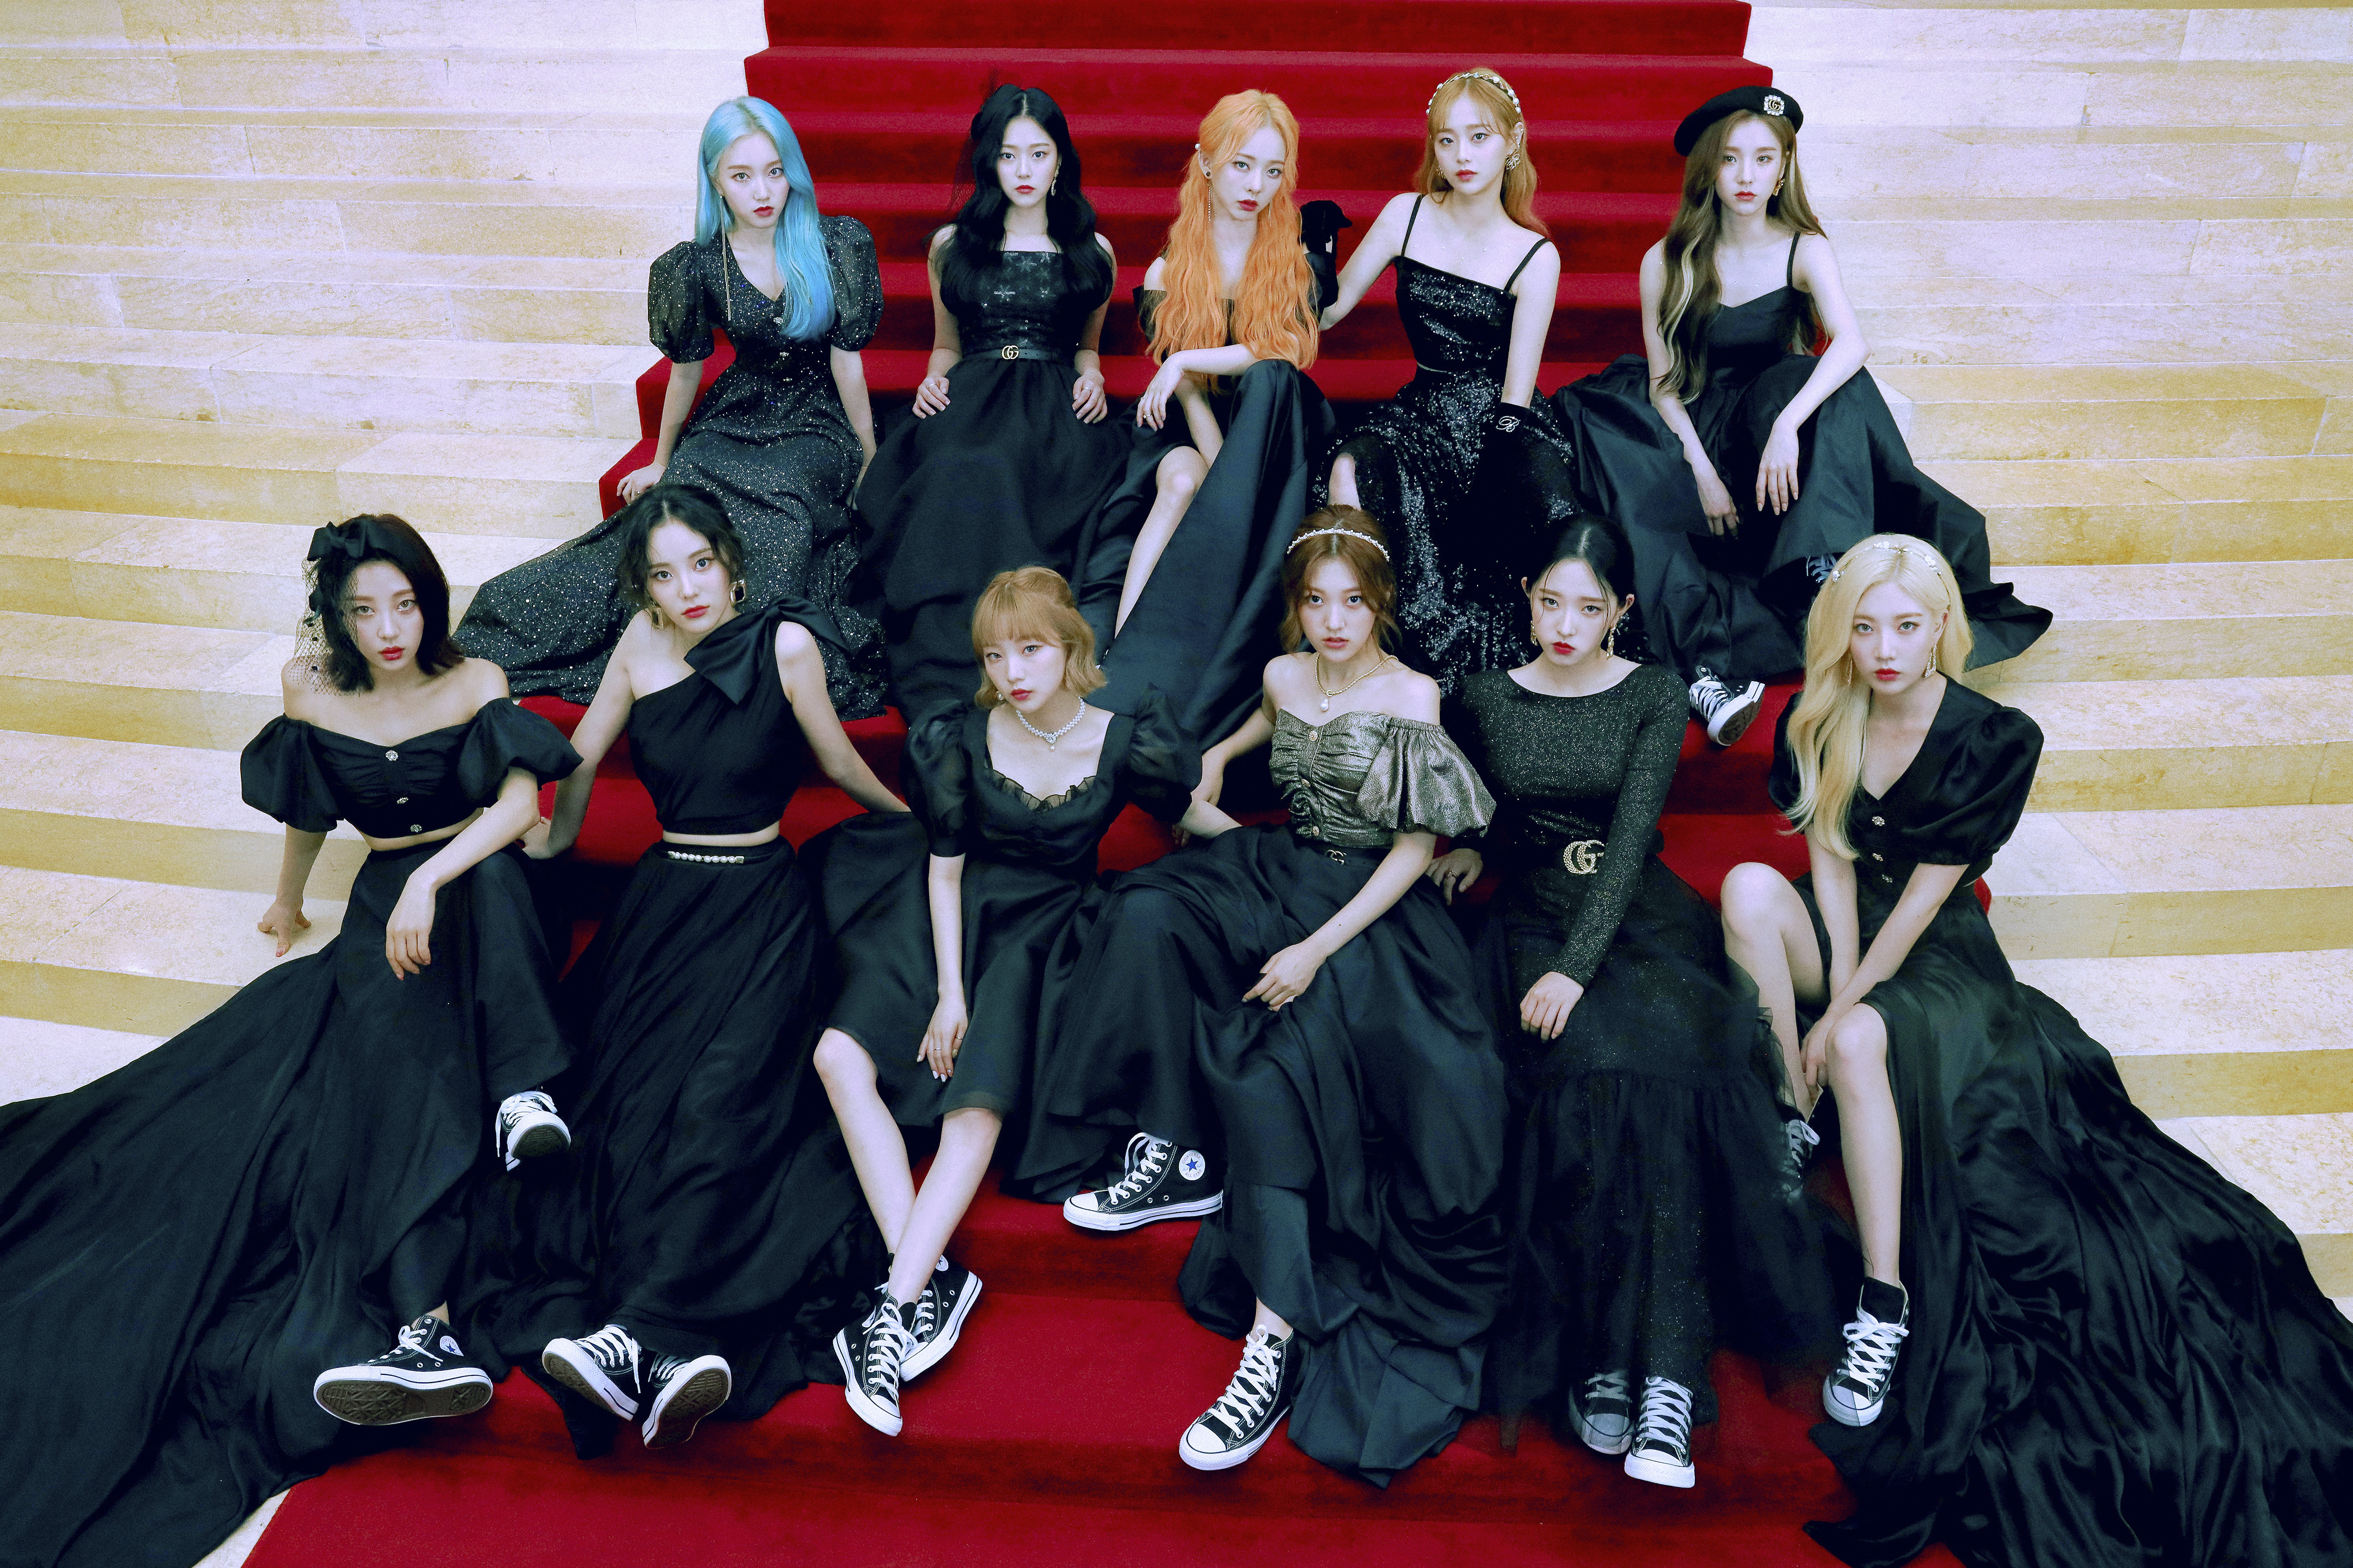 LOONA 12:00 Concept Group